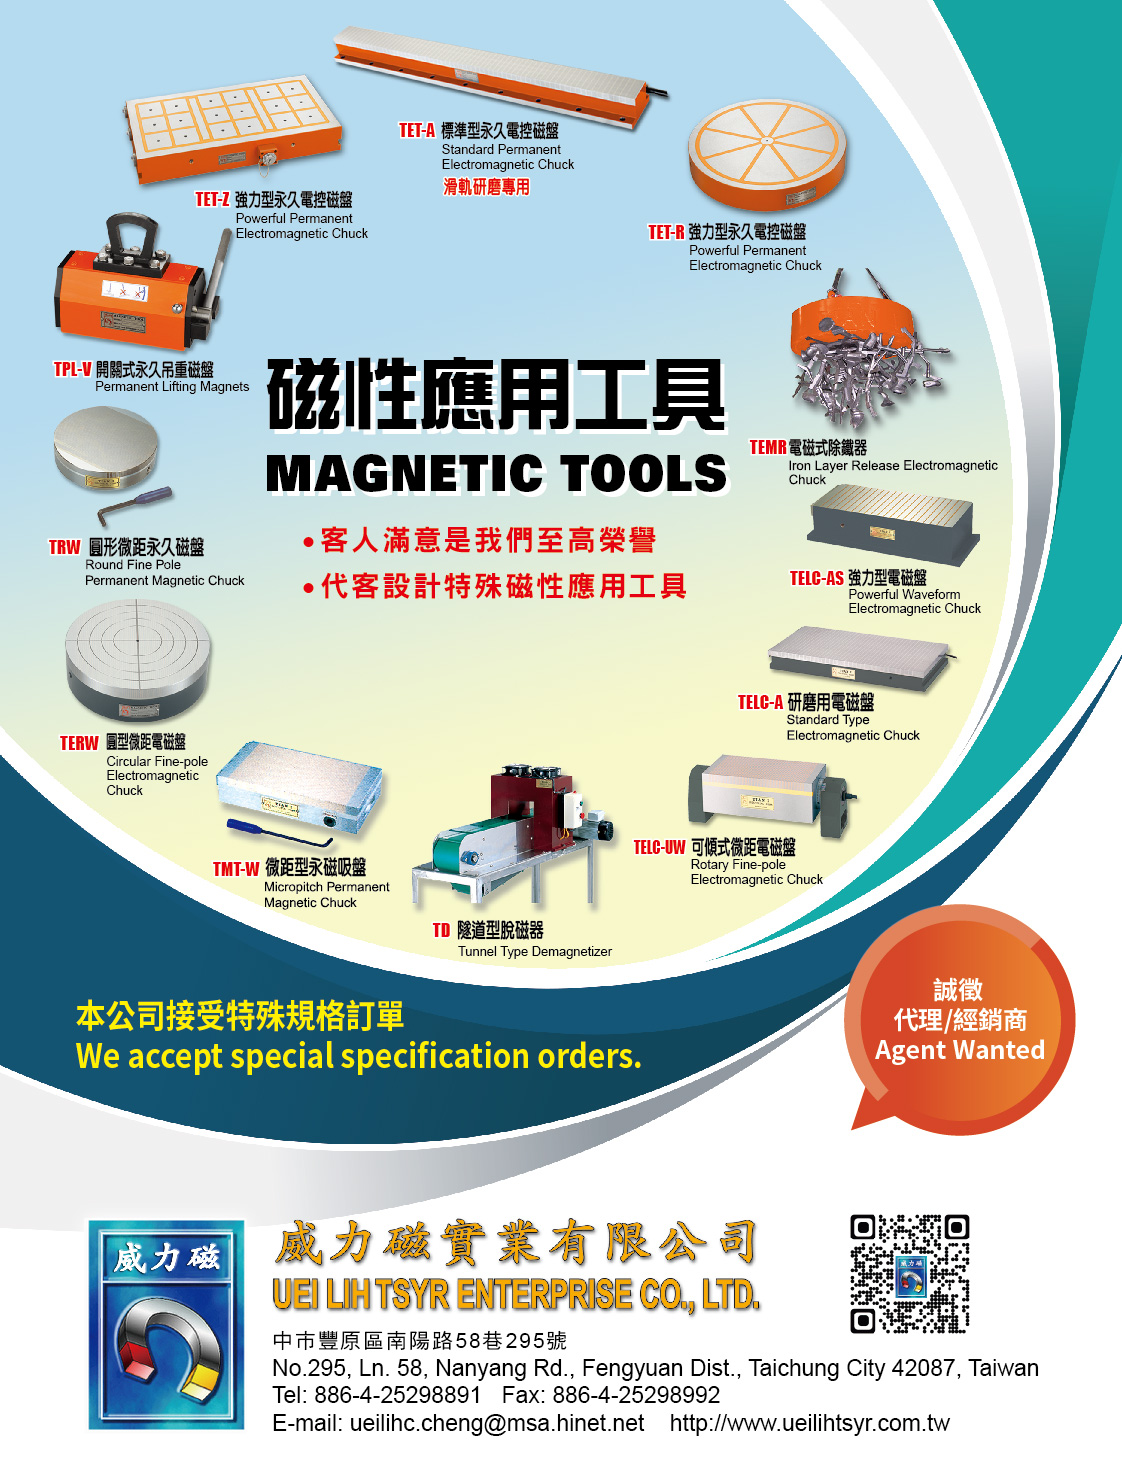 UEI LIH TSYR ENTERPRISE CO., LTD.